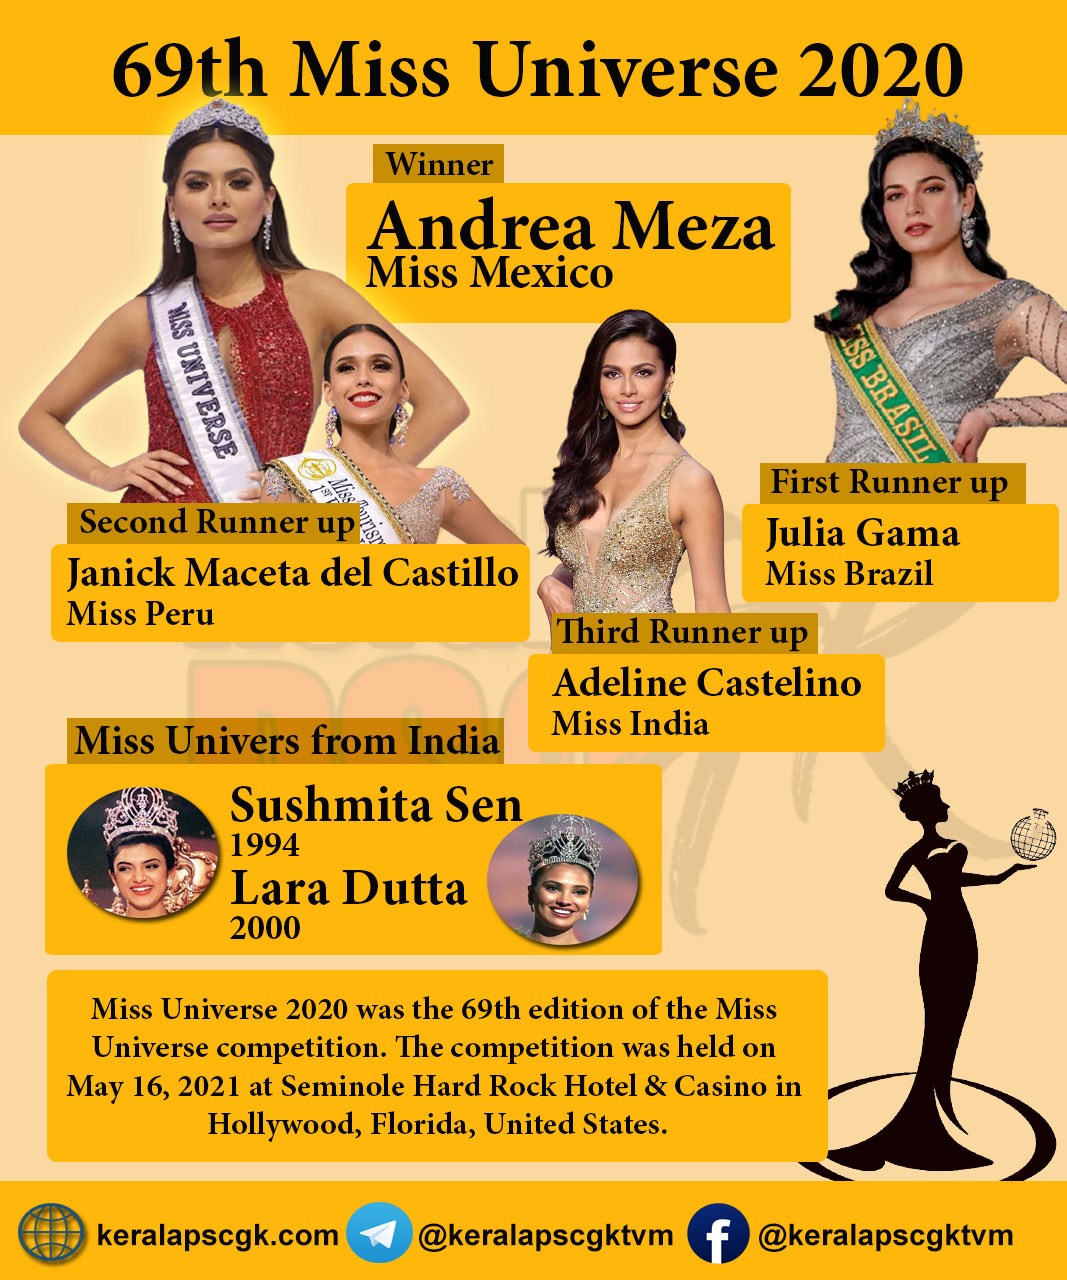 Andrea Meza of Mexico crowned Miss Universe 2020